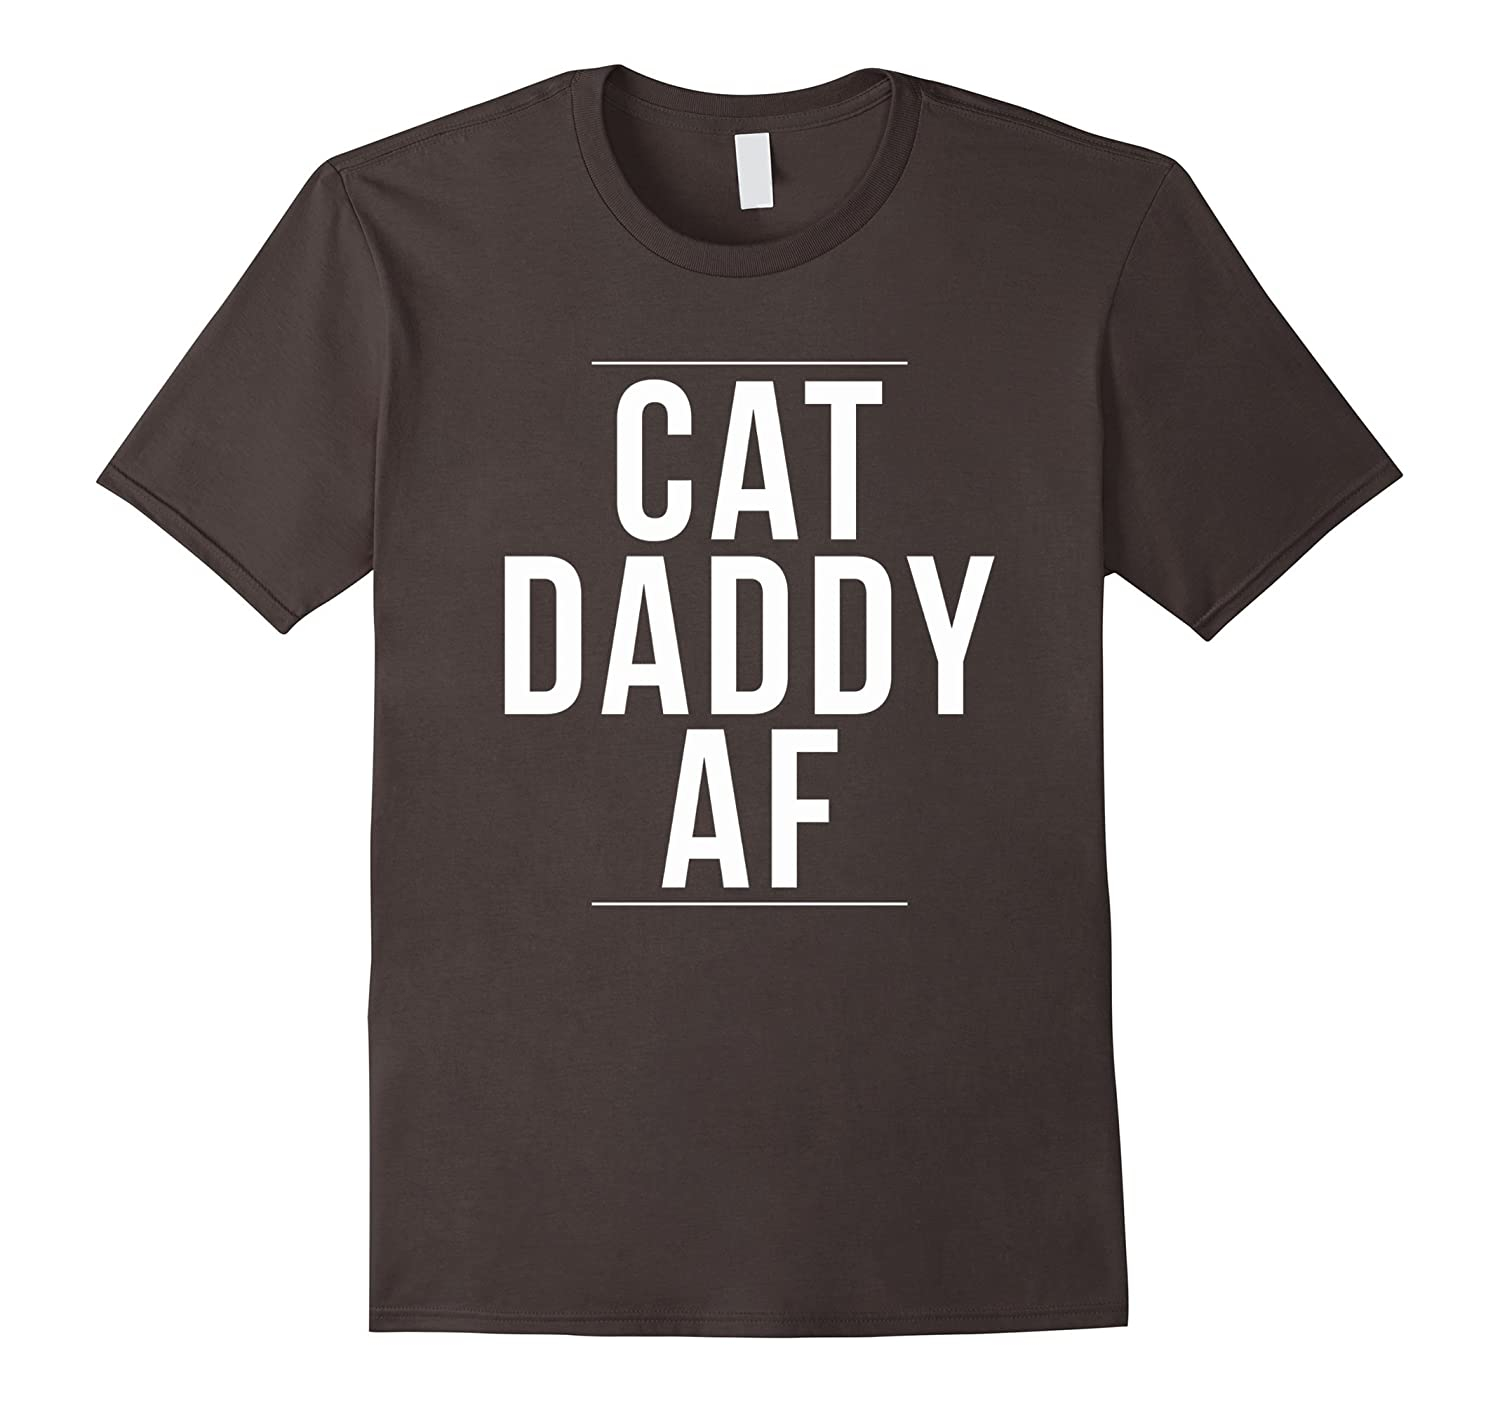 Cat Daddy AF T-Shirt Funny Cool Saying Sarcastic Novelty-Awarplus